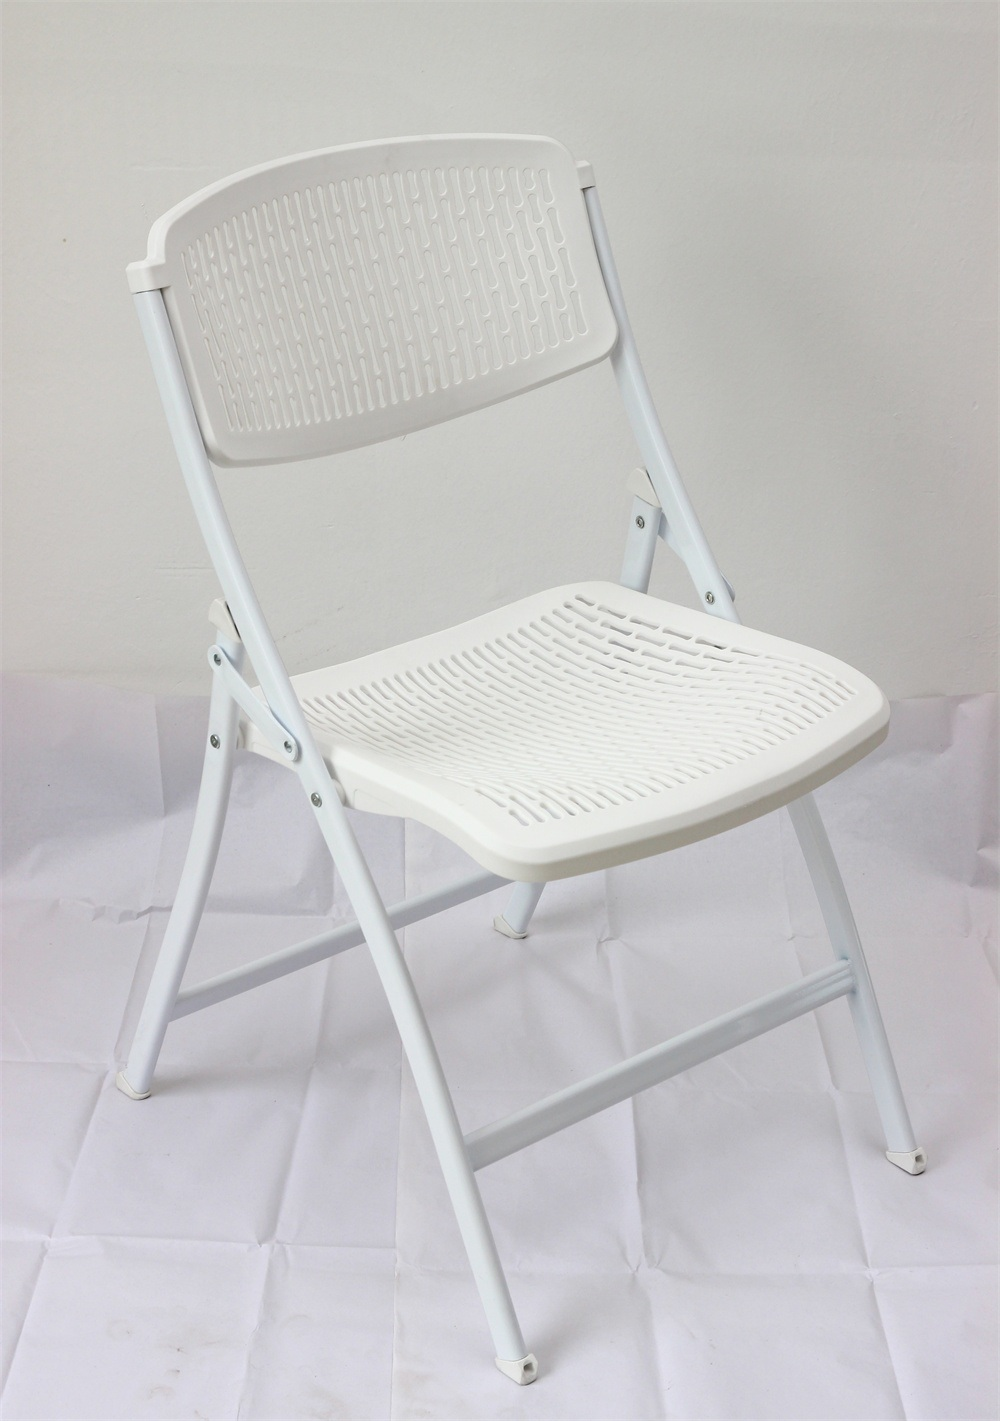 plastic metal chairs. China New Design Plastic Metal Folding Chair For Outdoor Event - Chair, Chairs R